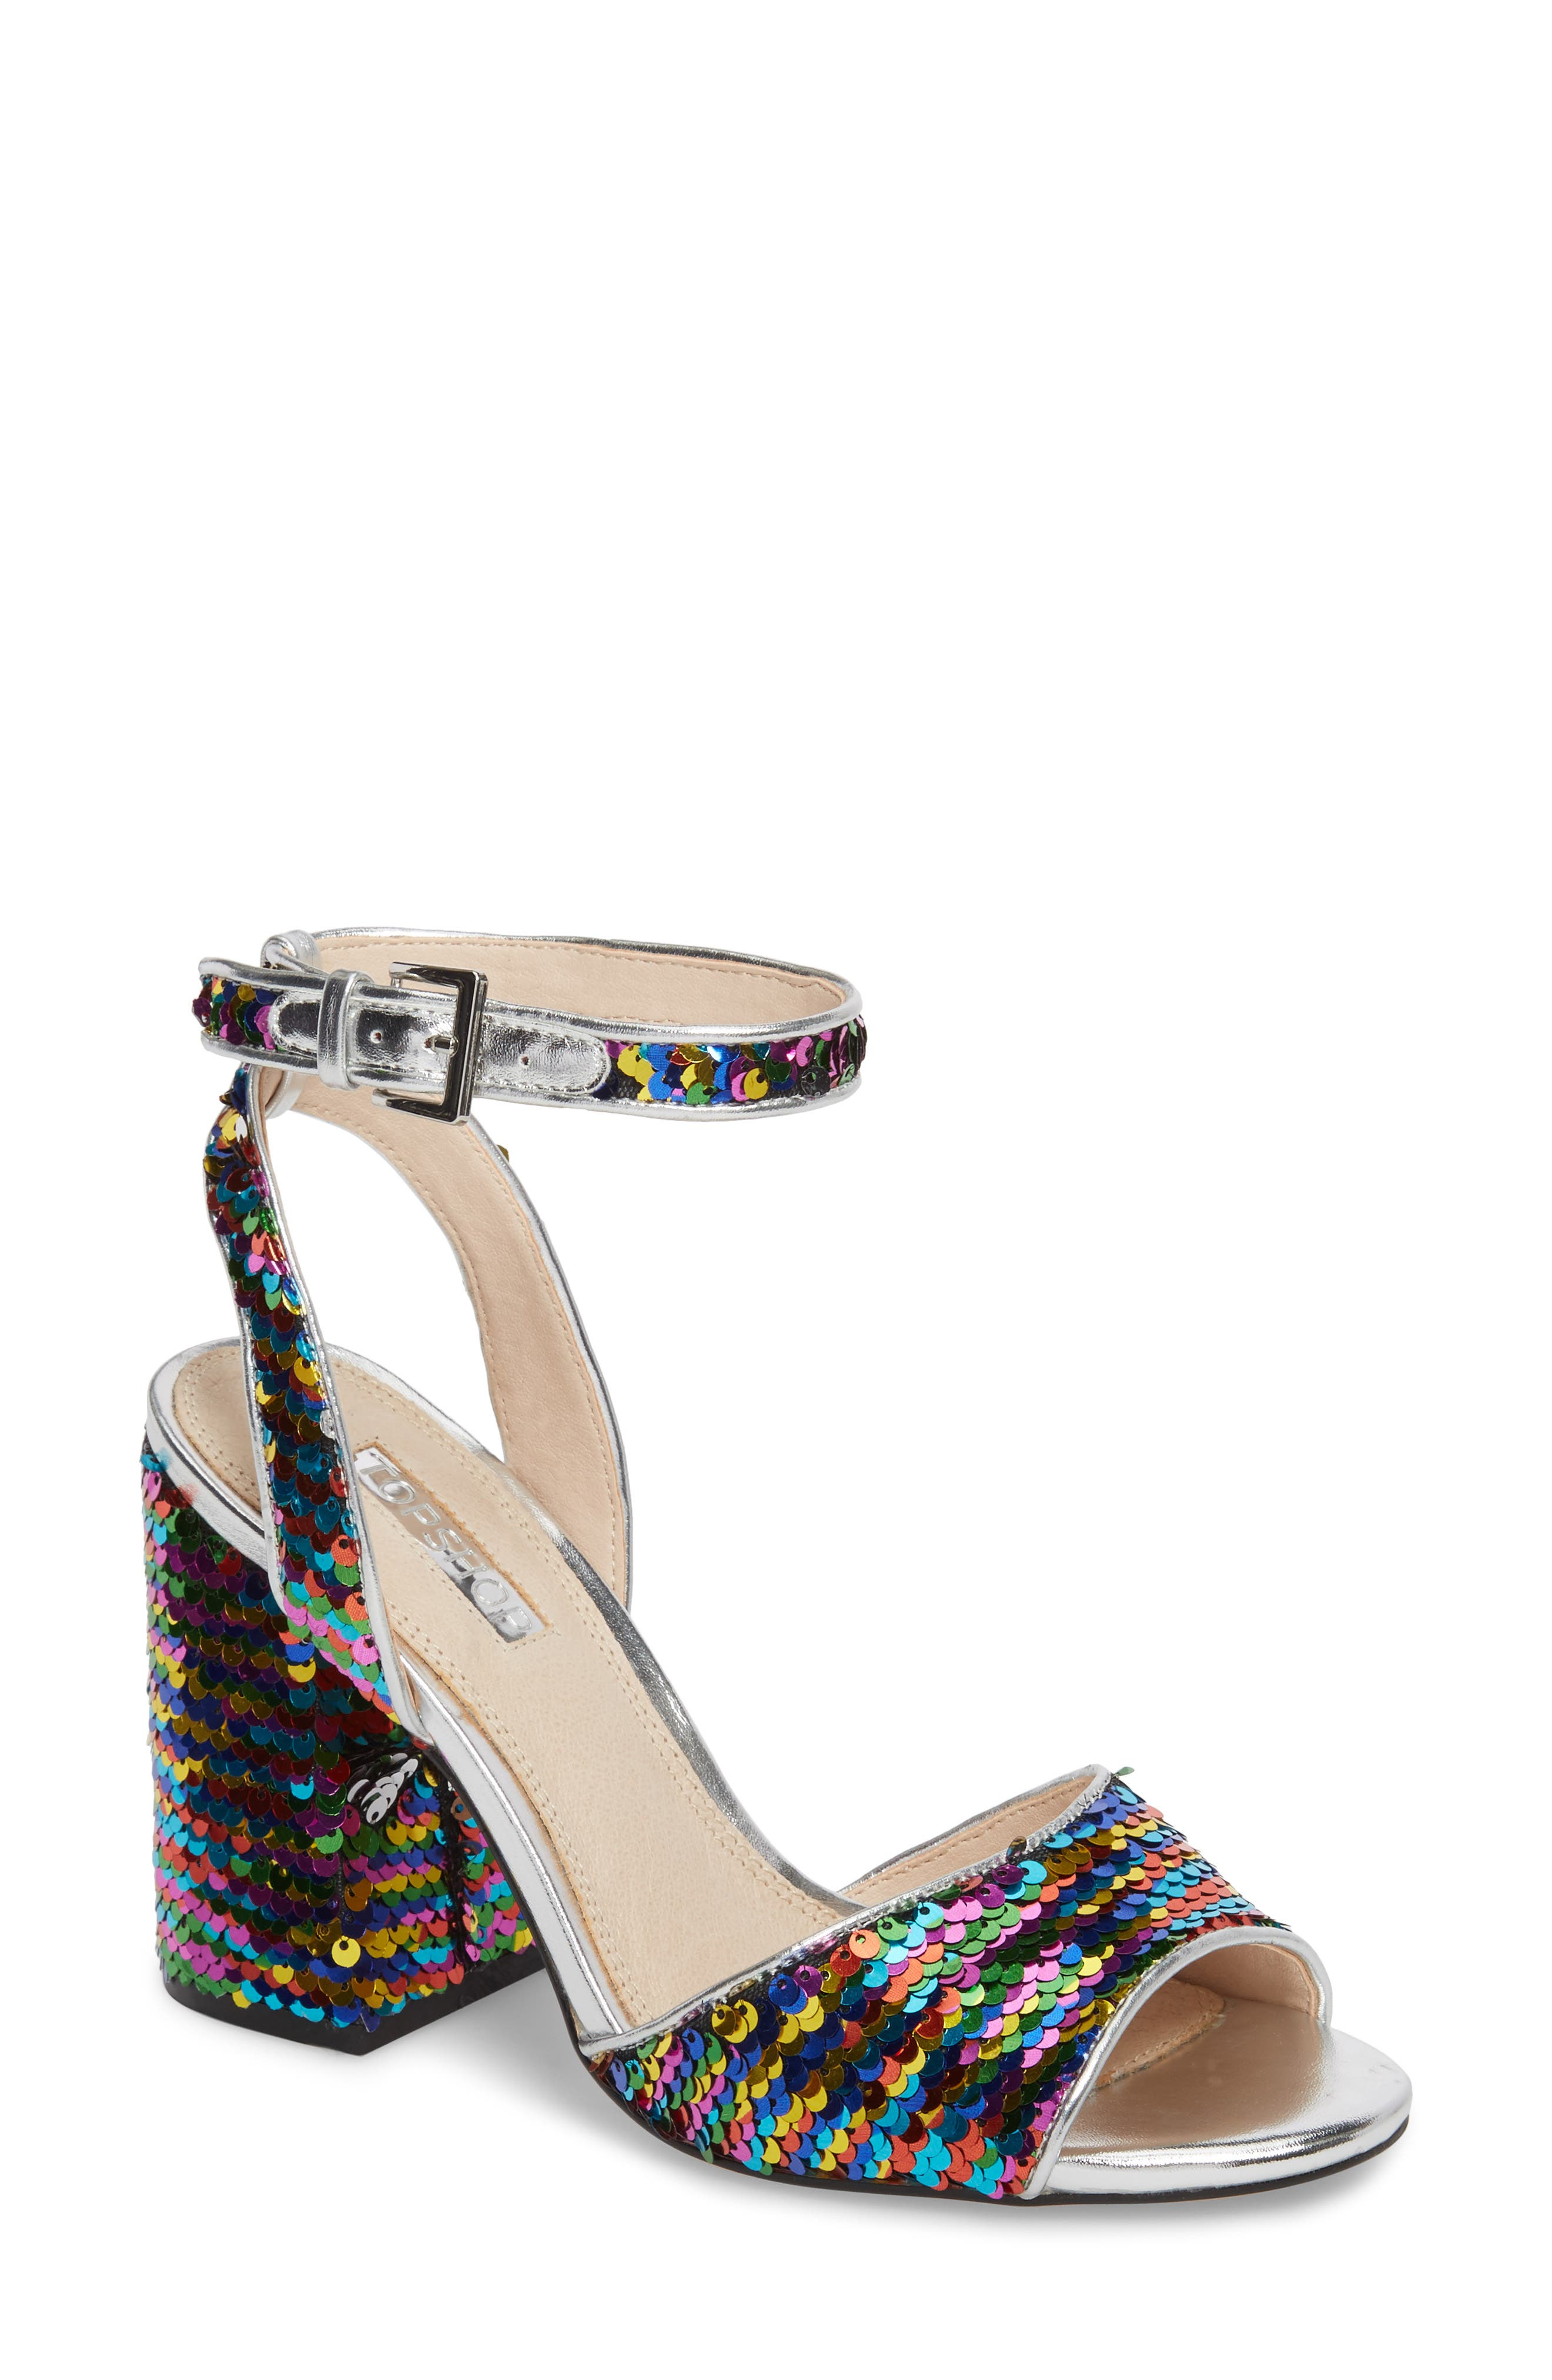 Reaction Sequin Block Heel Sandal,                             Main thumbnail 1, color,                             Silver Multi